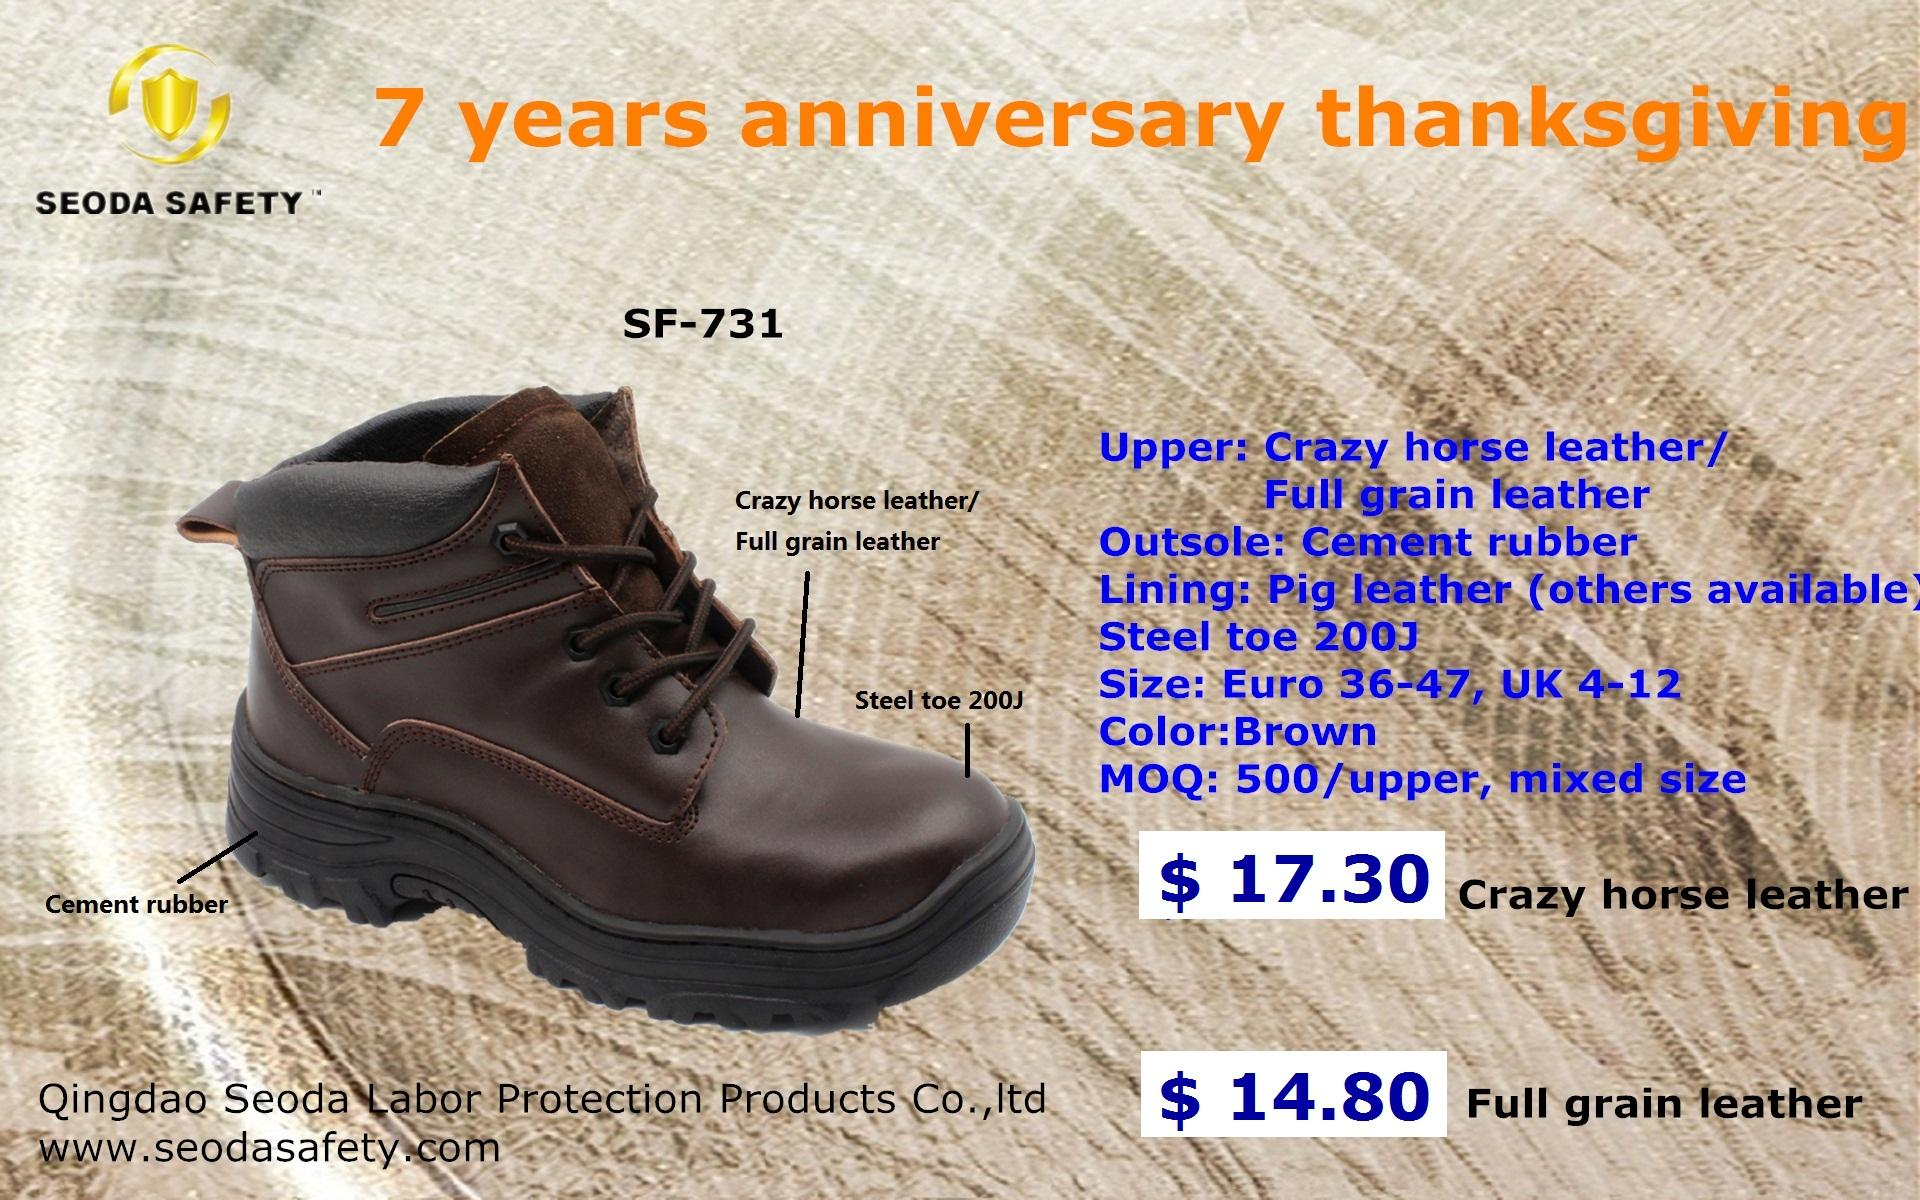 Crazy horse leather safety shoes 3